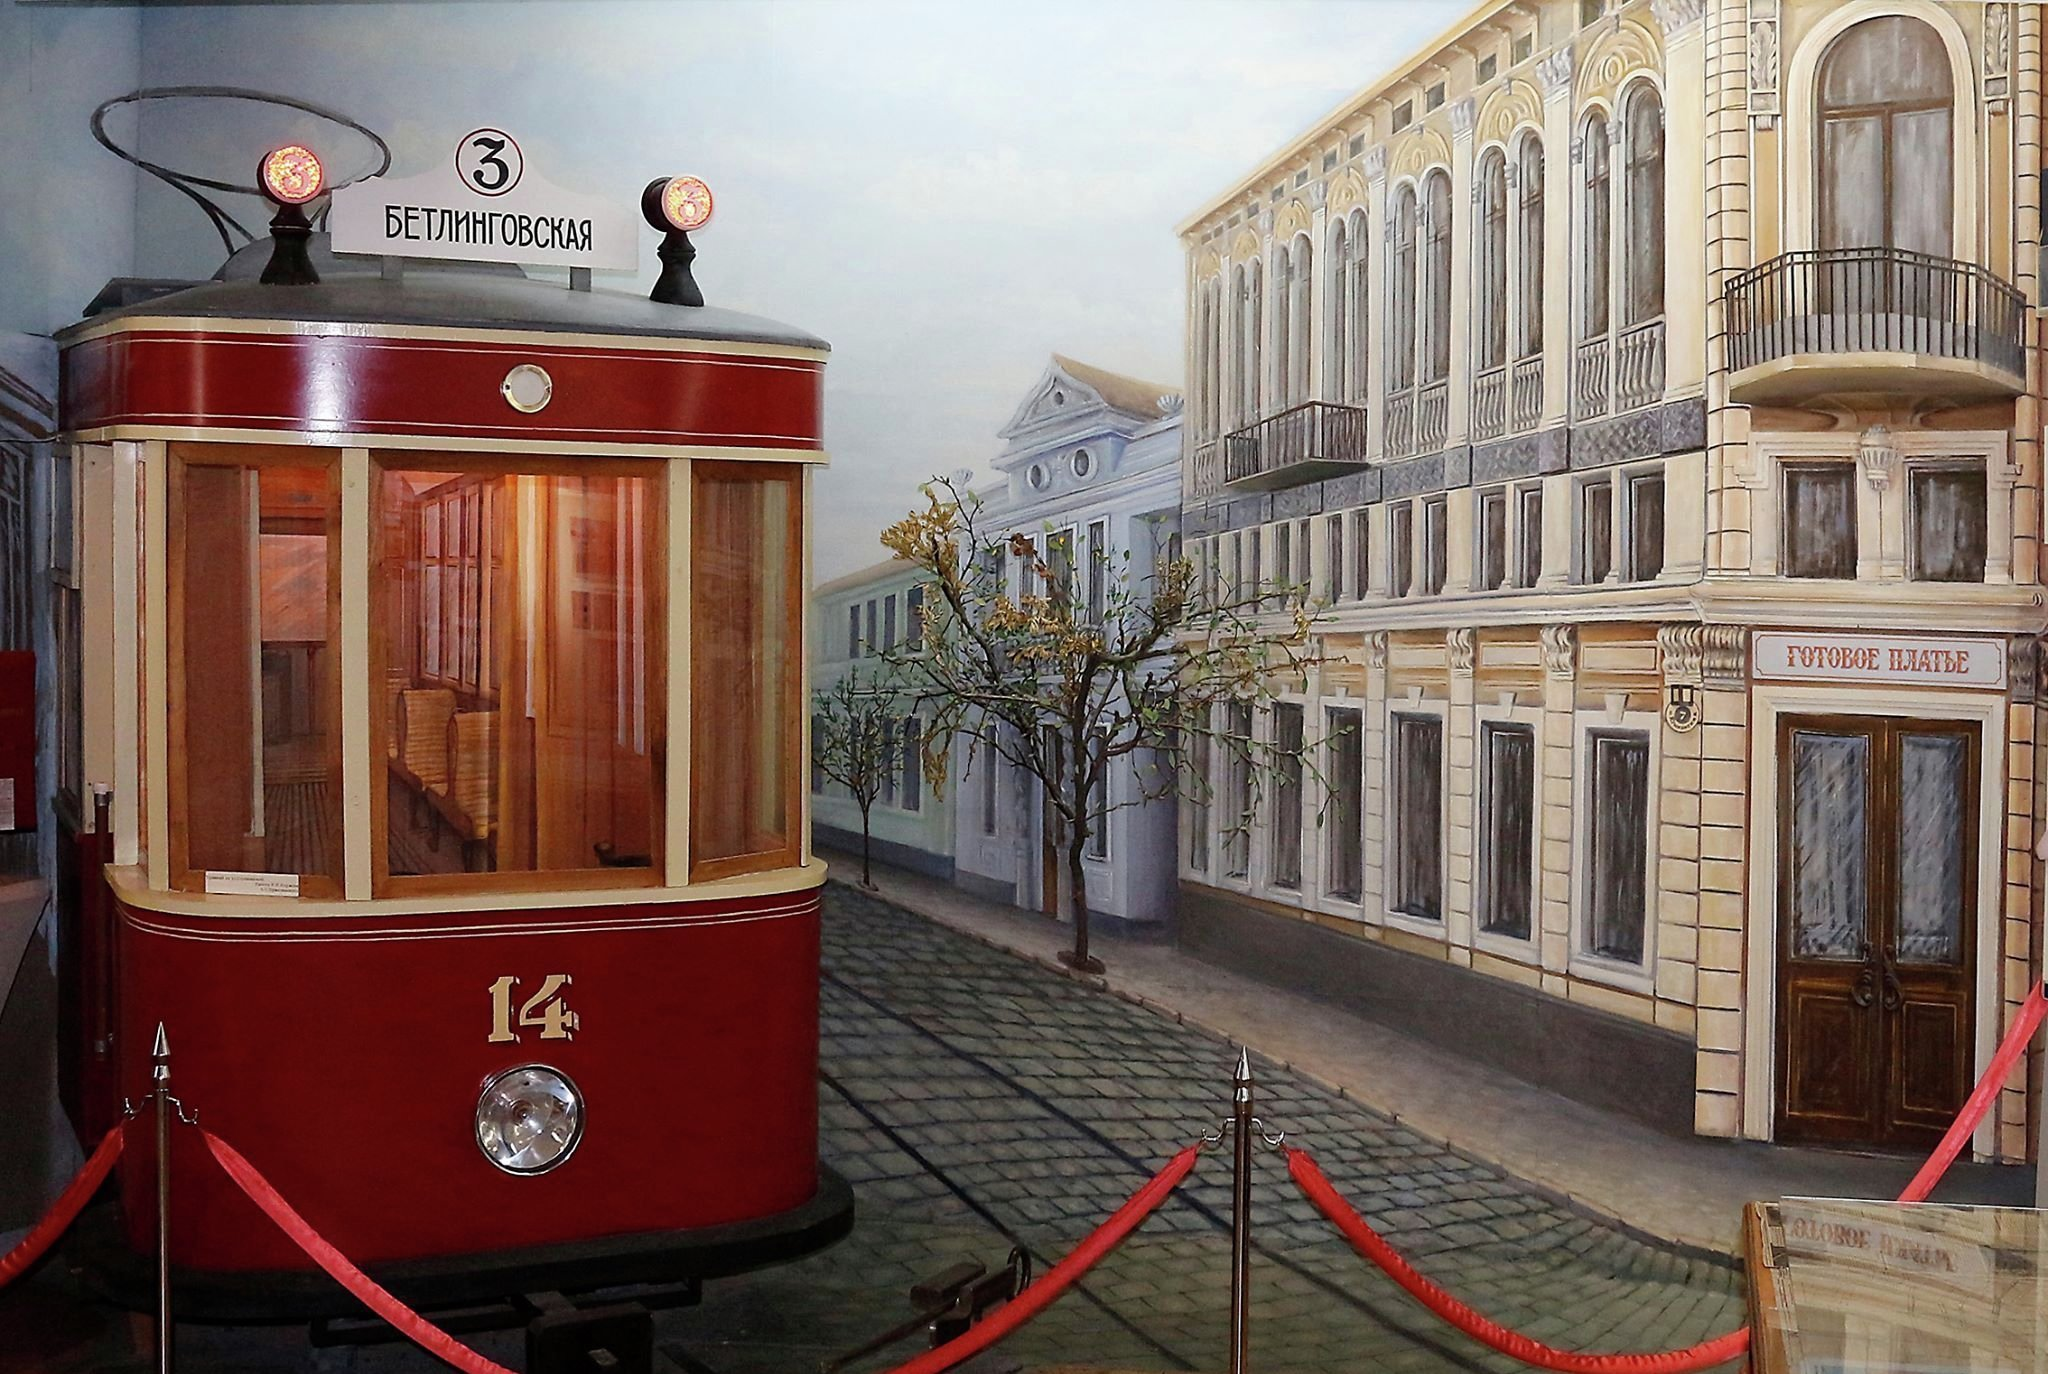 Museum of the History of Tram and Trolleybus